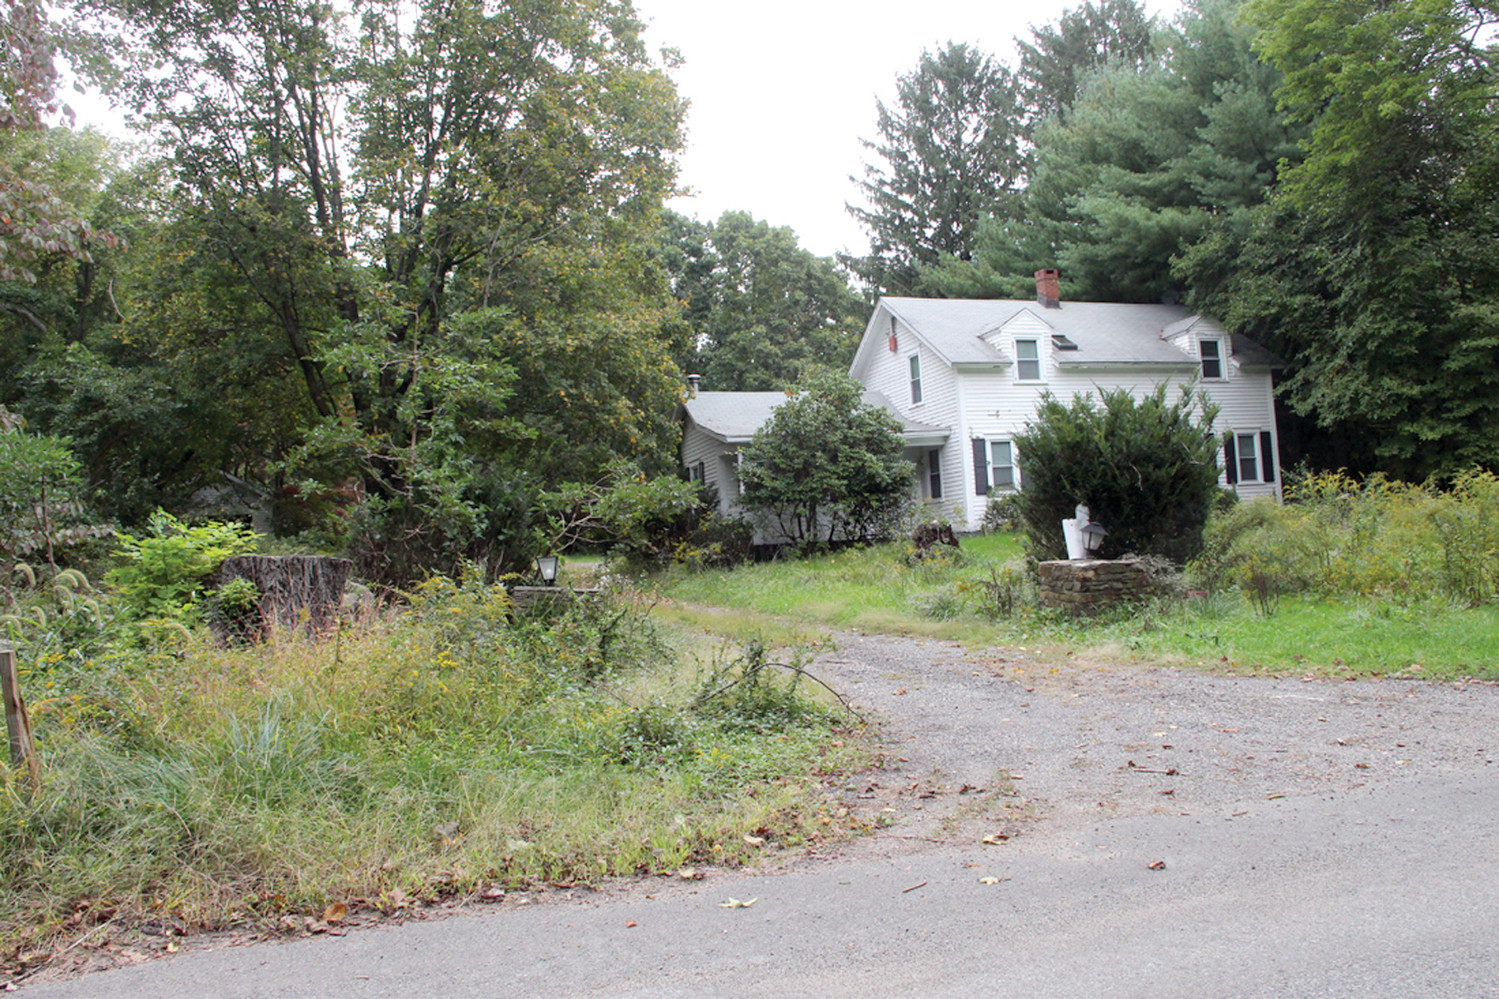 WOODED AREA: This vacant house on Major Potter Road is on the property that will serve as the entrance to Stonebridge Crossing, a 48-unit condo development on more than 20 acres.